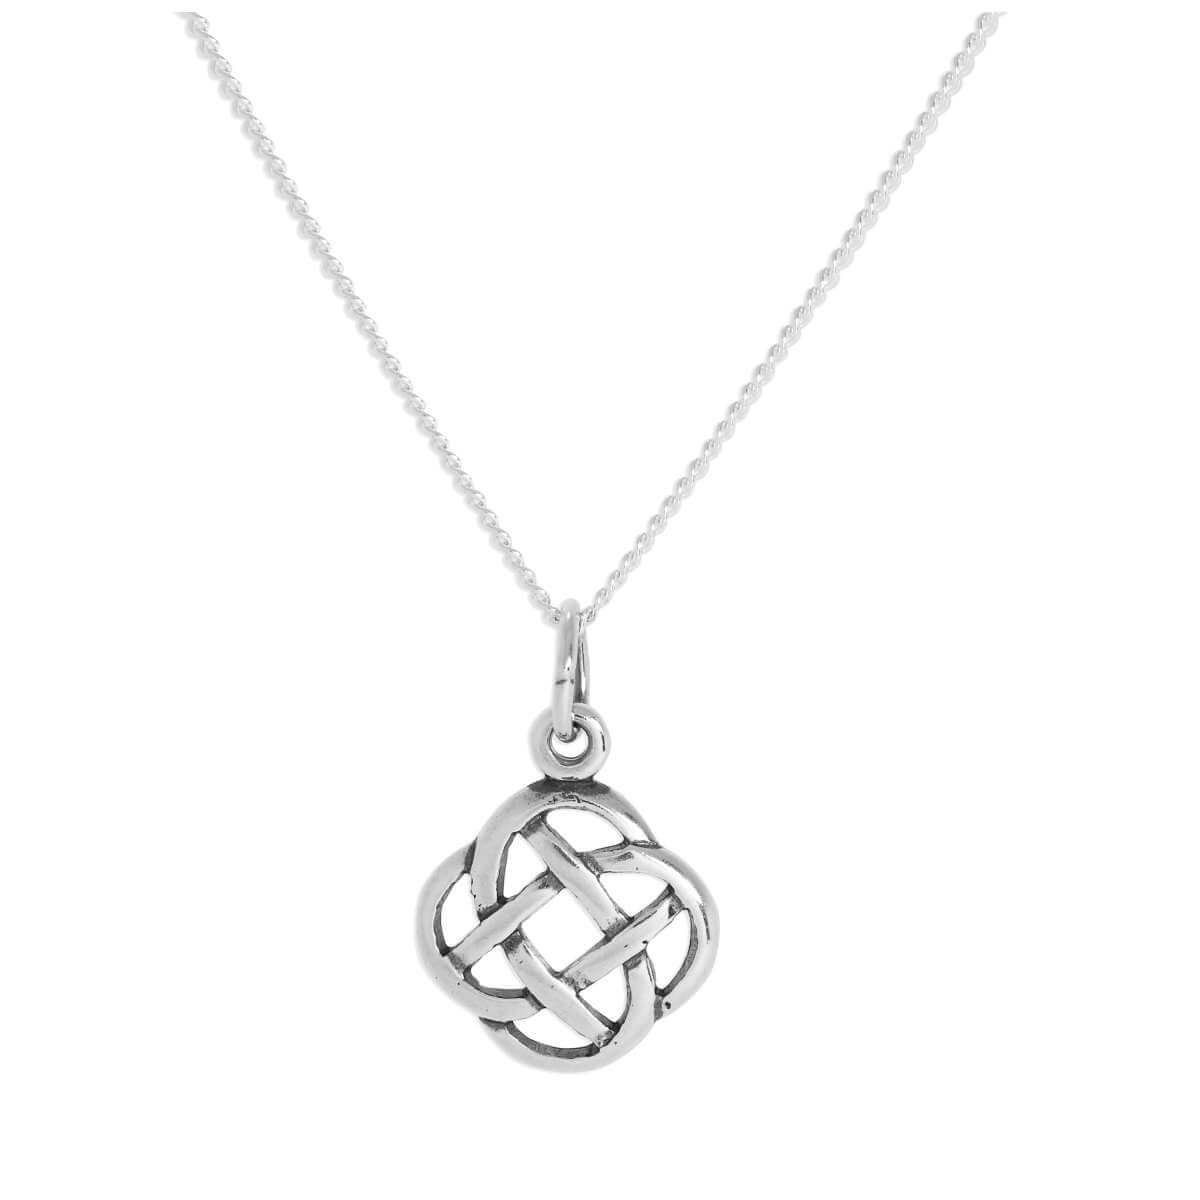 Sterling Silver Round Celtic Knot Pendant on Chain 16 - 24 Inches